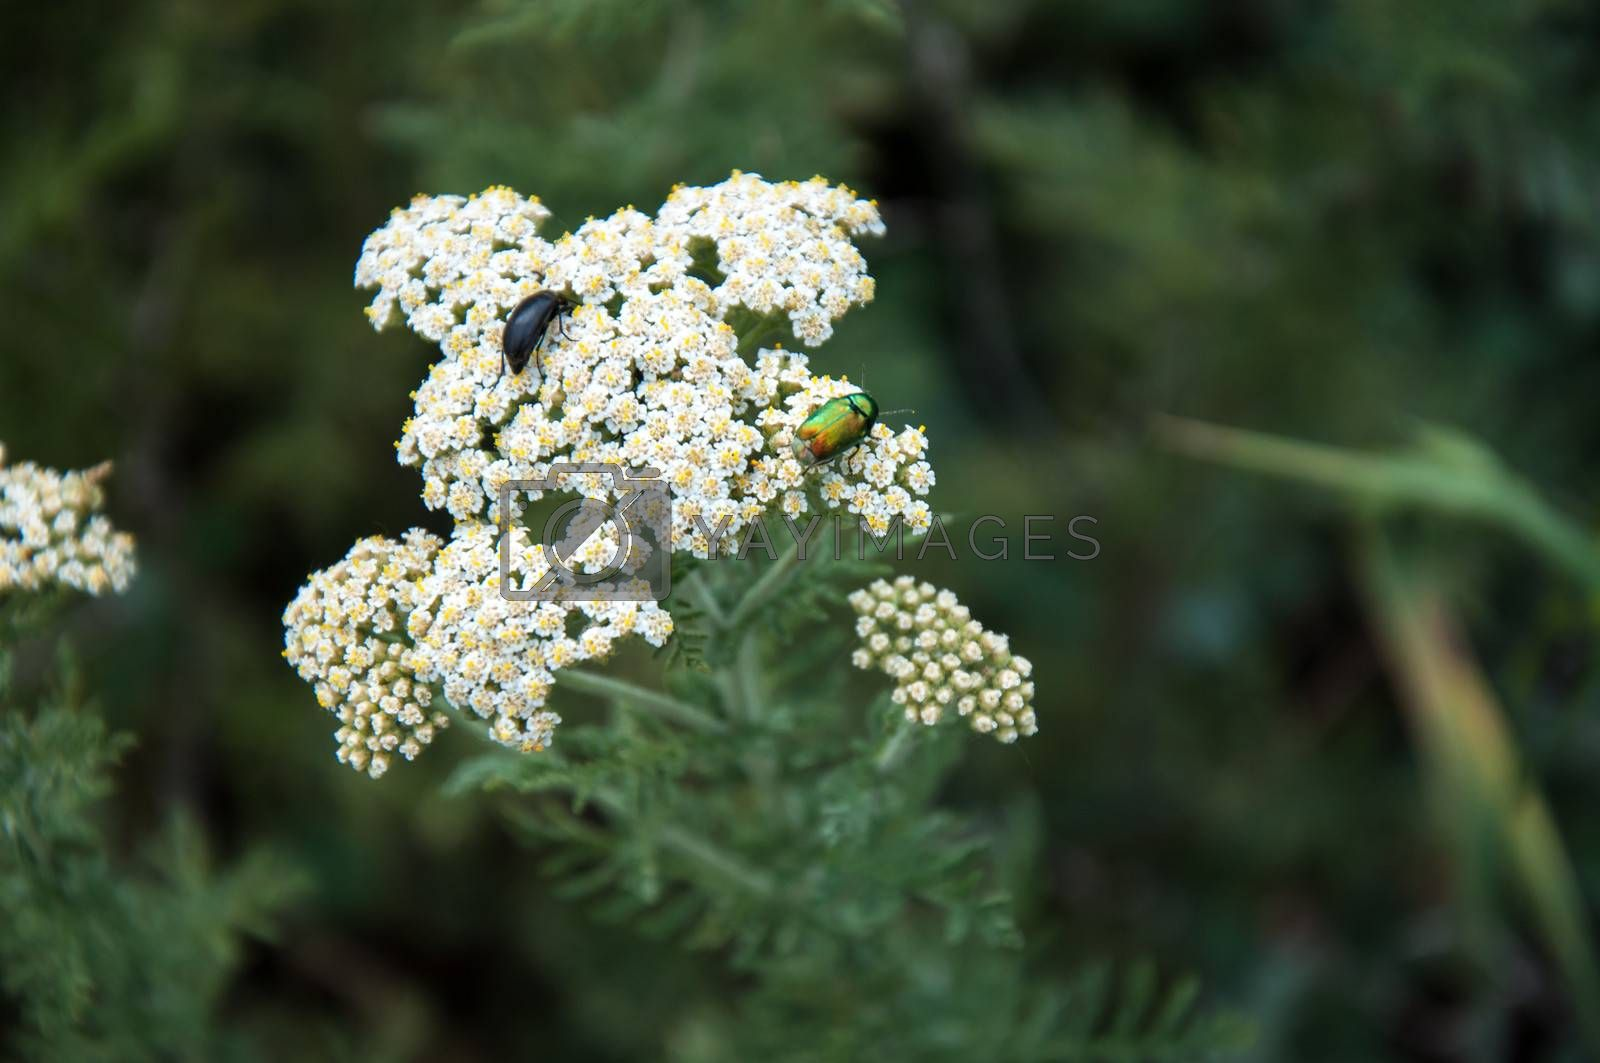 Royalty free image of Insects and plants by 0608195706081957